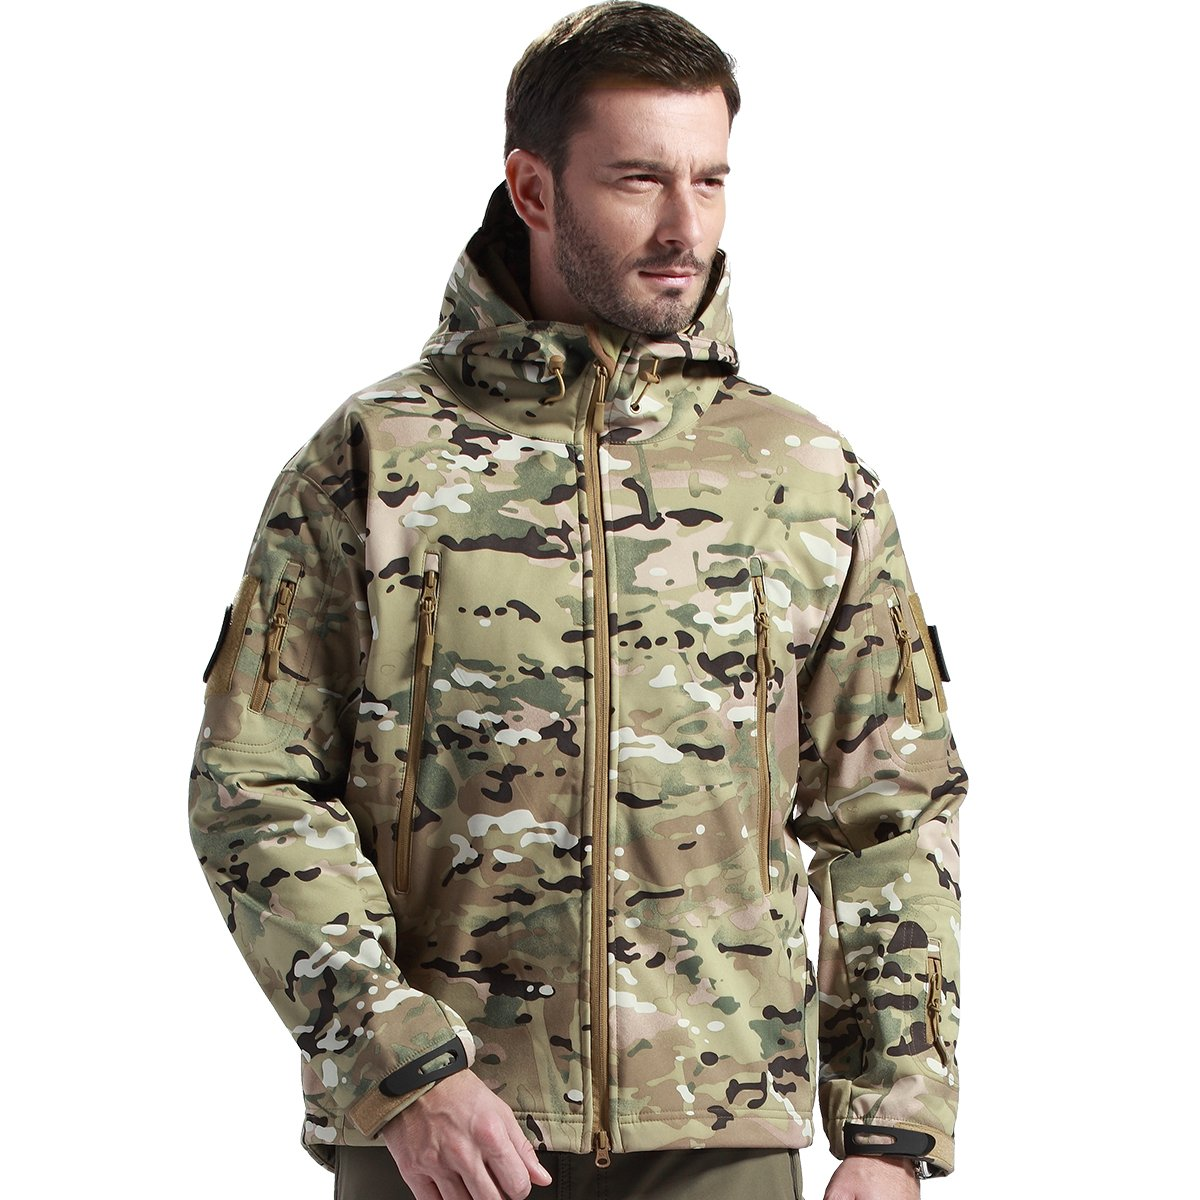 FREE SOLDIER Men's Tactical Jacket Waterproof Army Military Hooded Jacket Softshell Autumn Winter Jacket (CP camouflage XL)